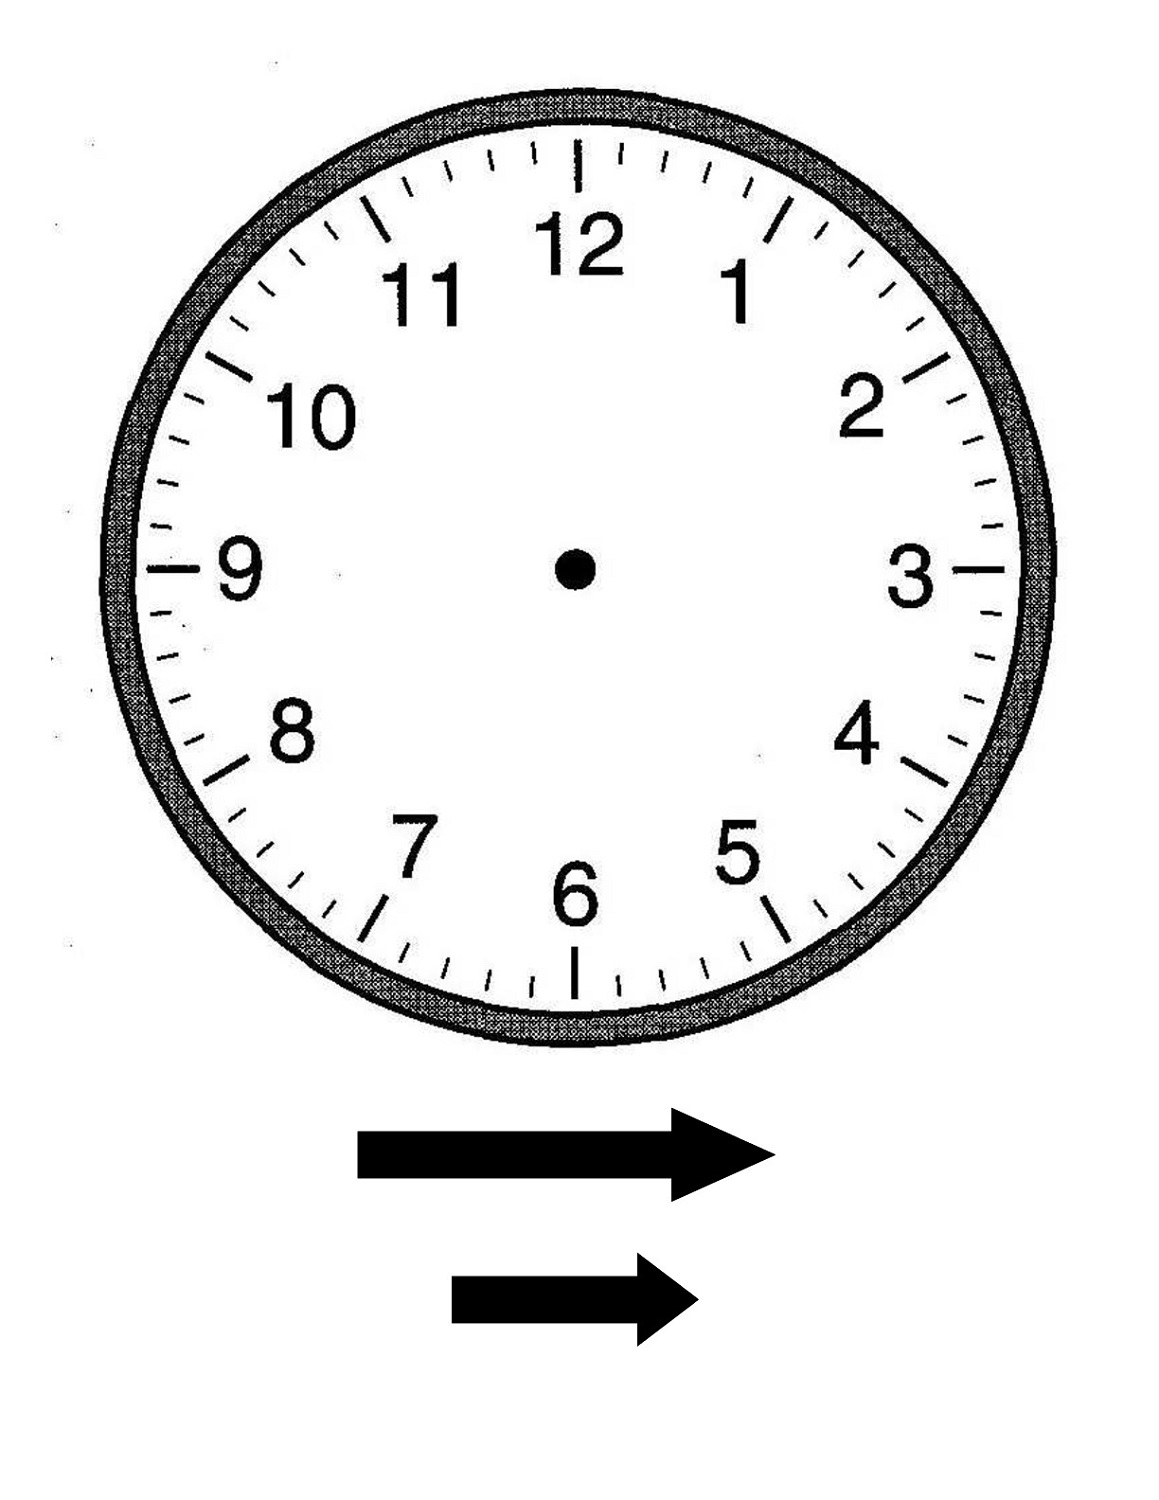 blank-clock-face-template-with-hands